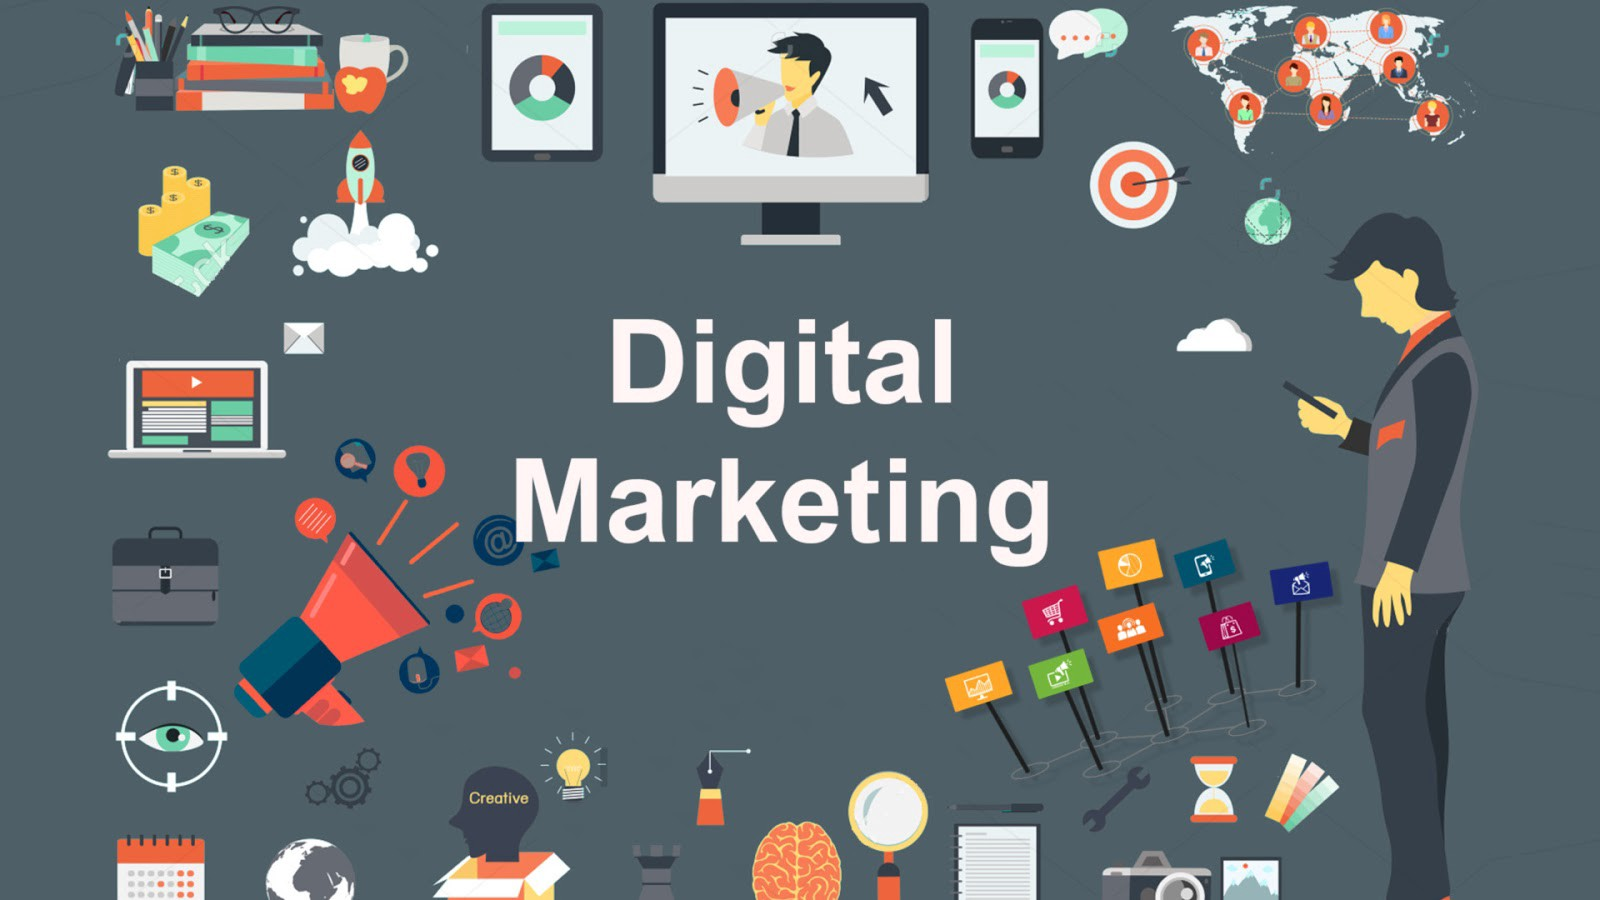 Must-Have Qualities of a Top Digital Marketing Agency in 2019